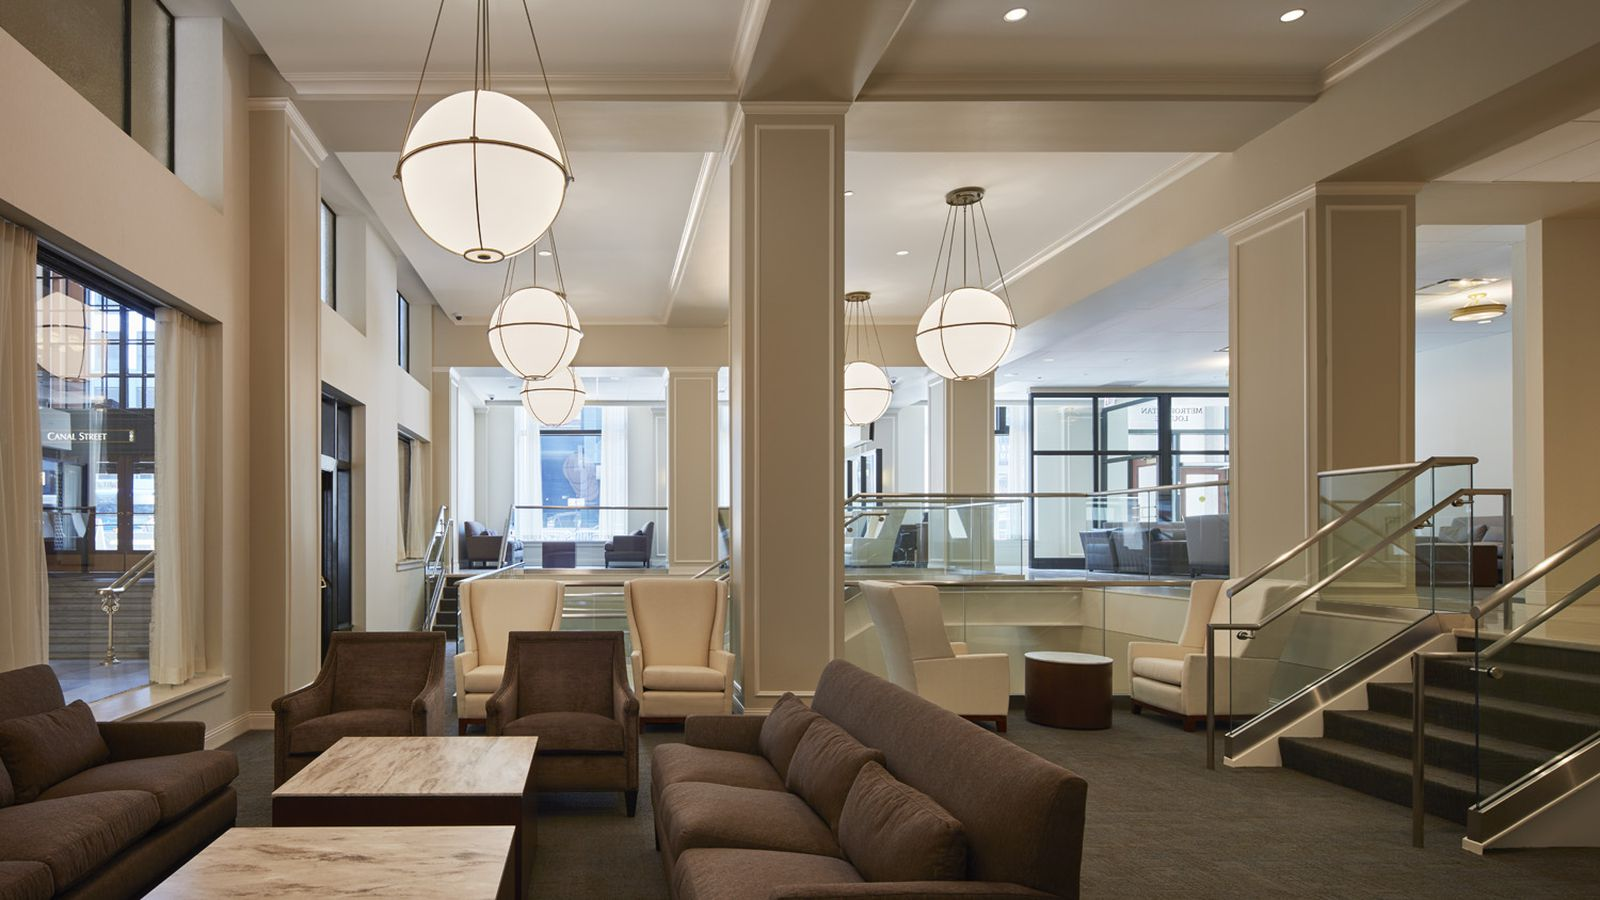 Taxi New York >> A Look at Amtrak's New Metropolitan Lounge at Union Station - Curbed Chicago